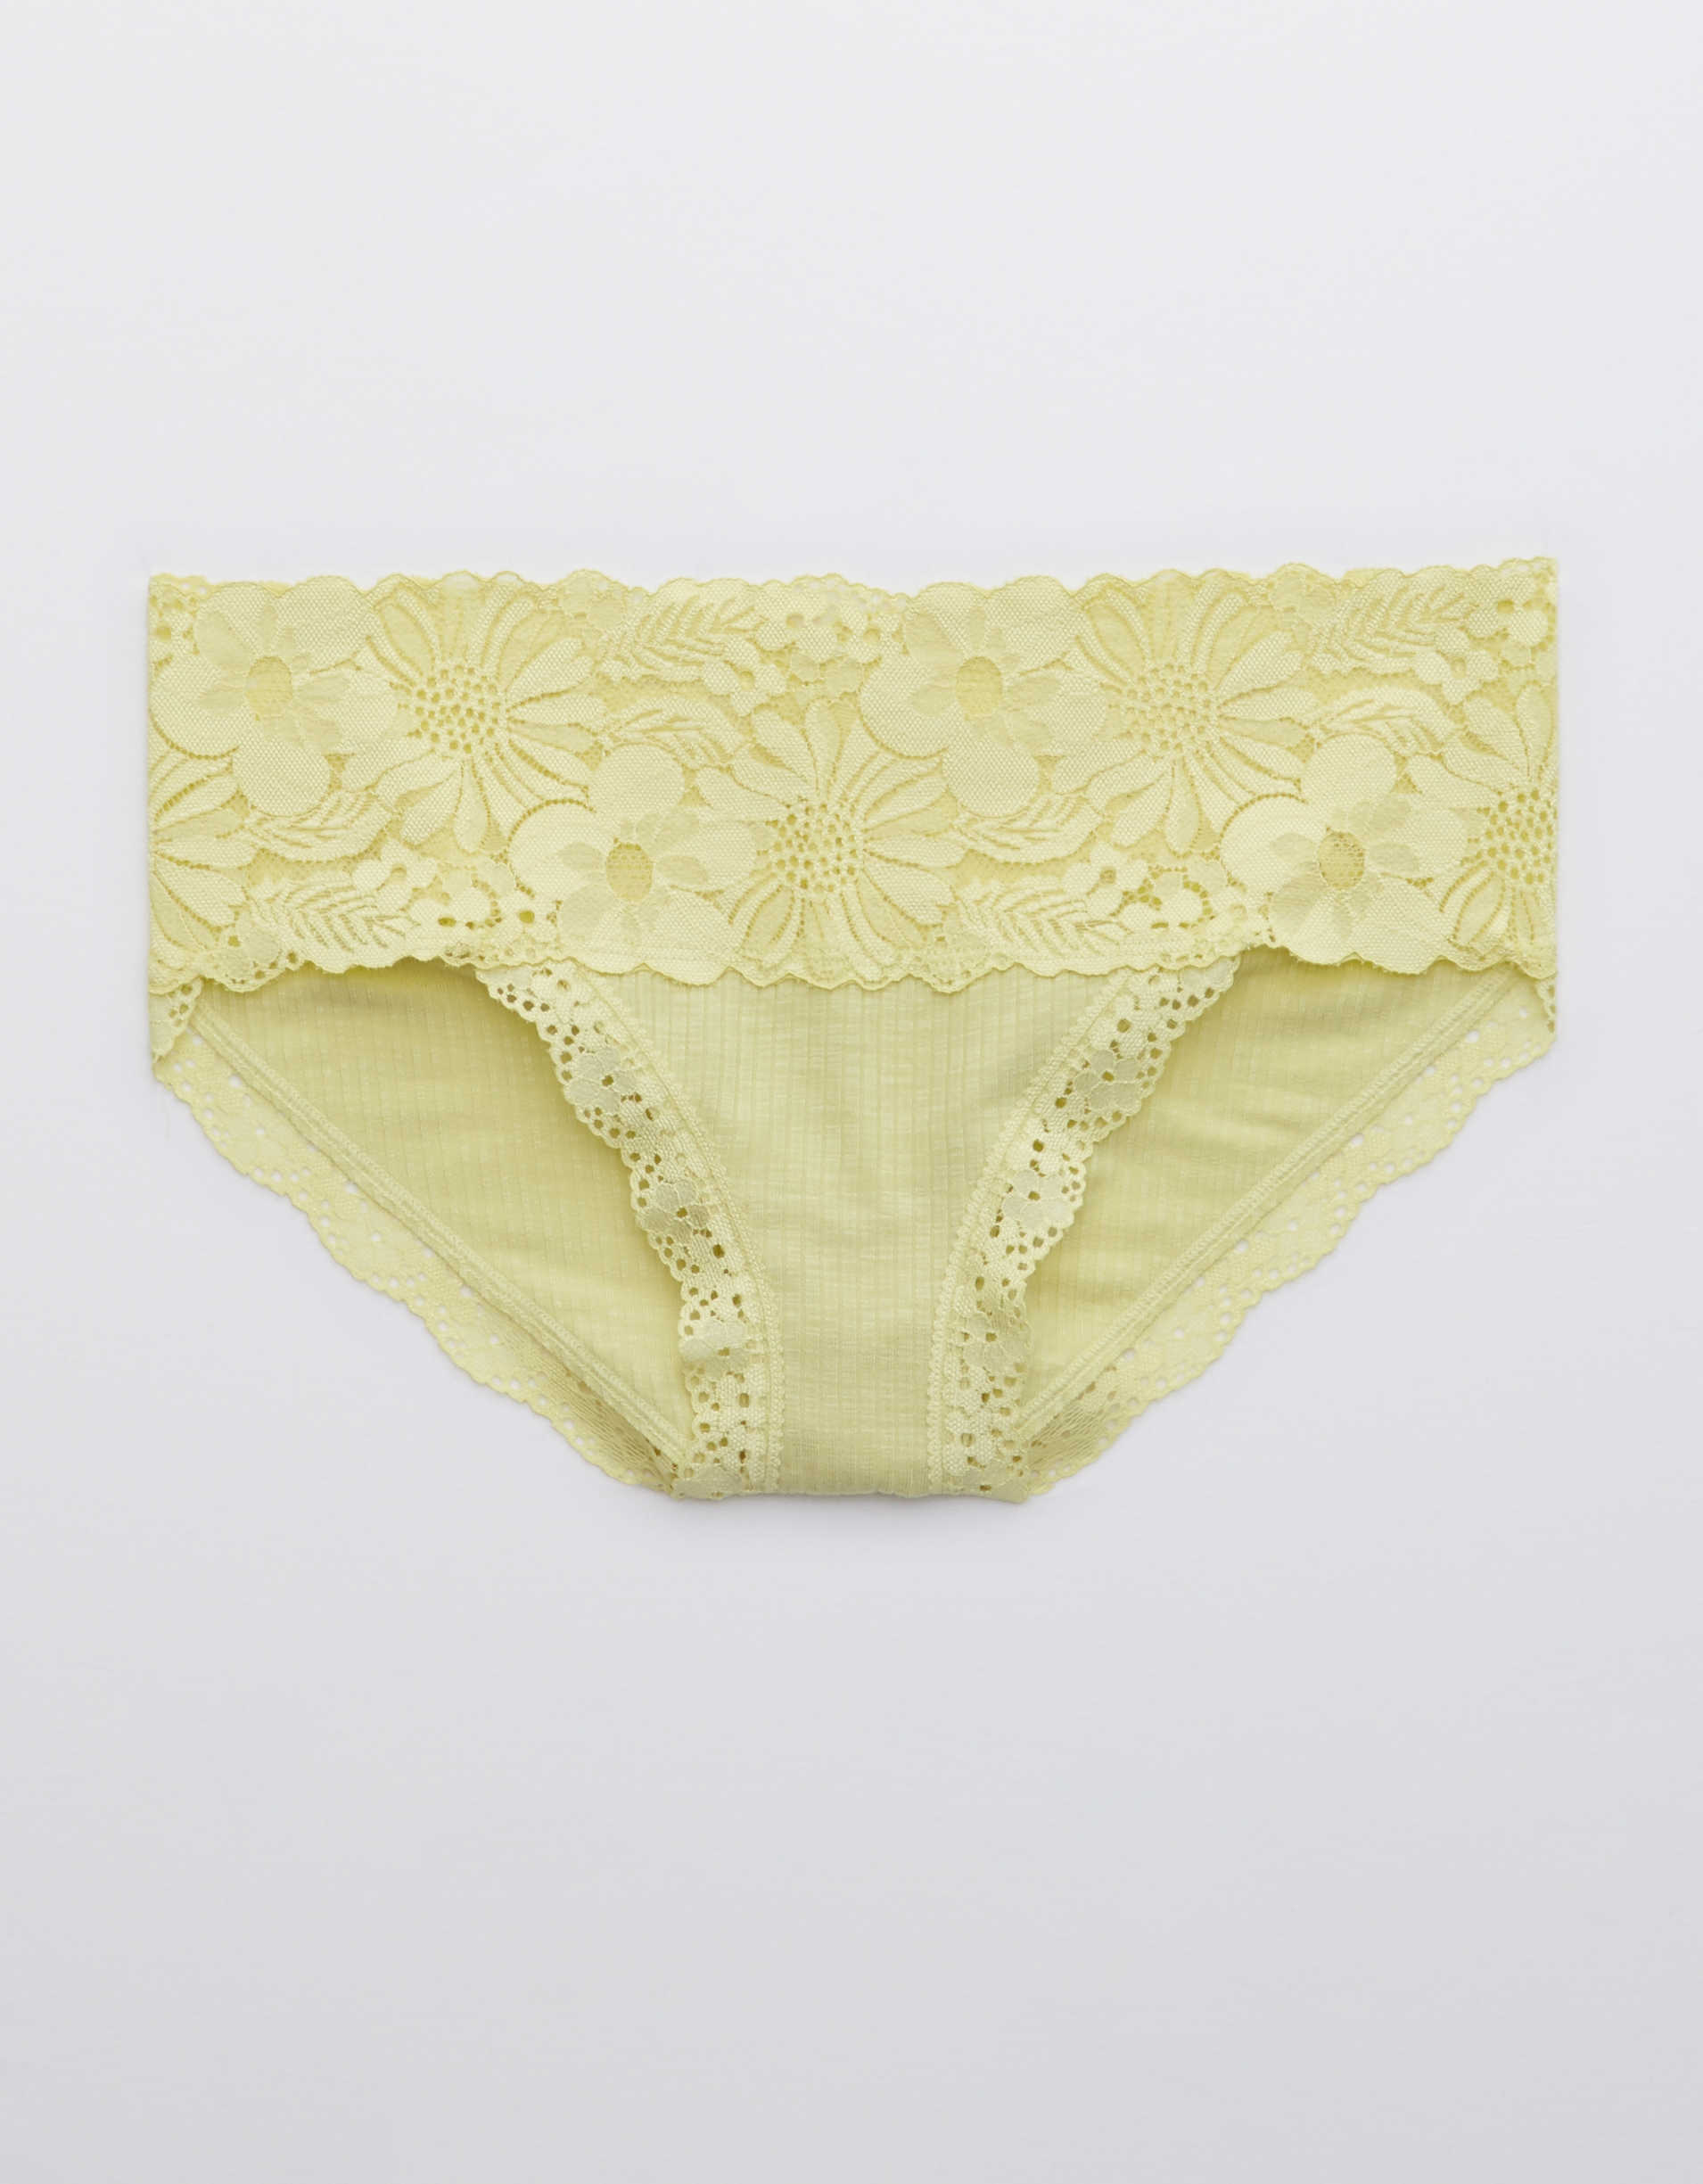 Aerie Garden Party Bikini Underwear